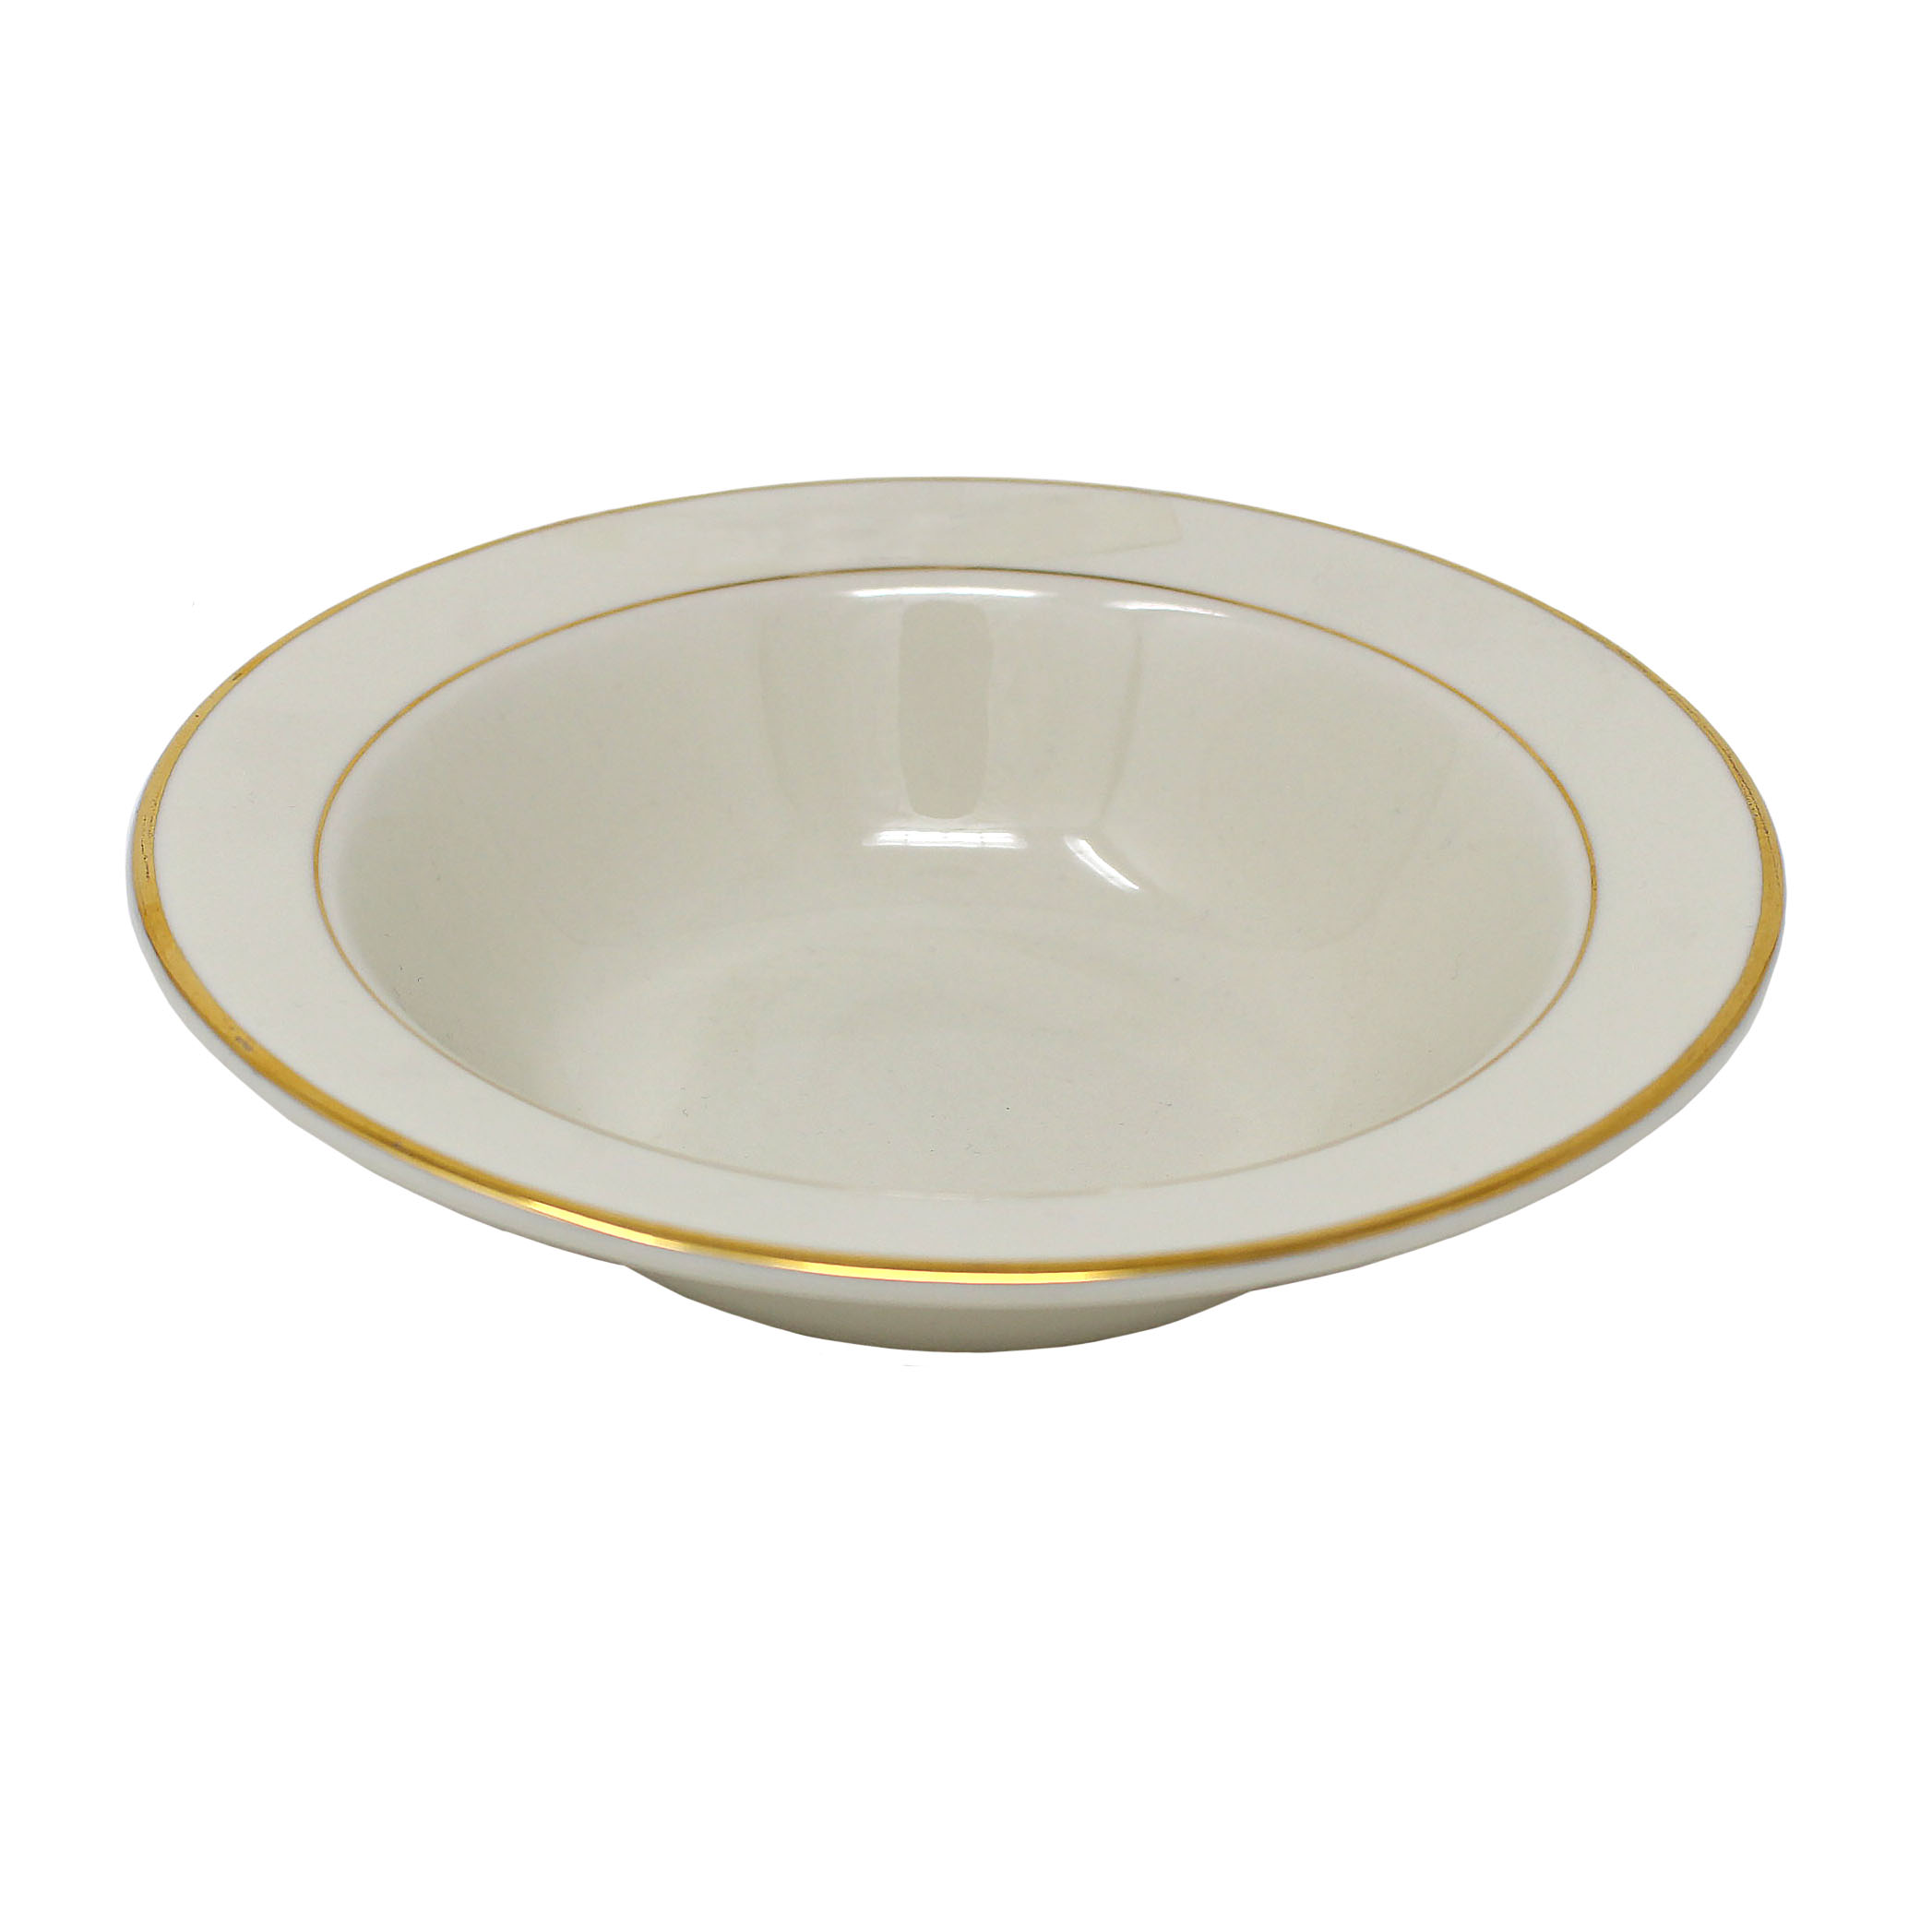 "Salad Soup Bowl Beige With Gold Band 7"" 11.5 Oz"